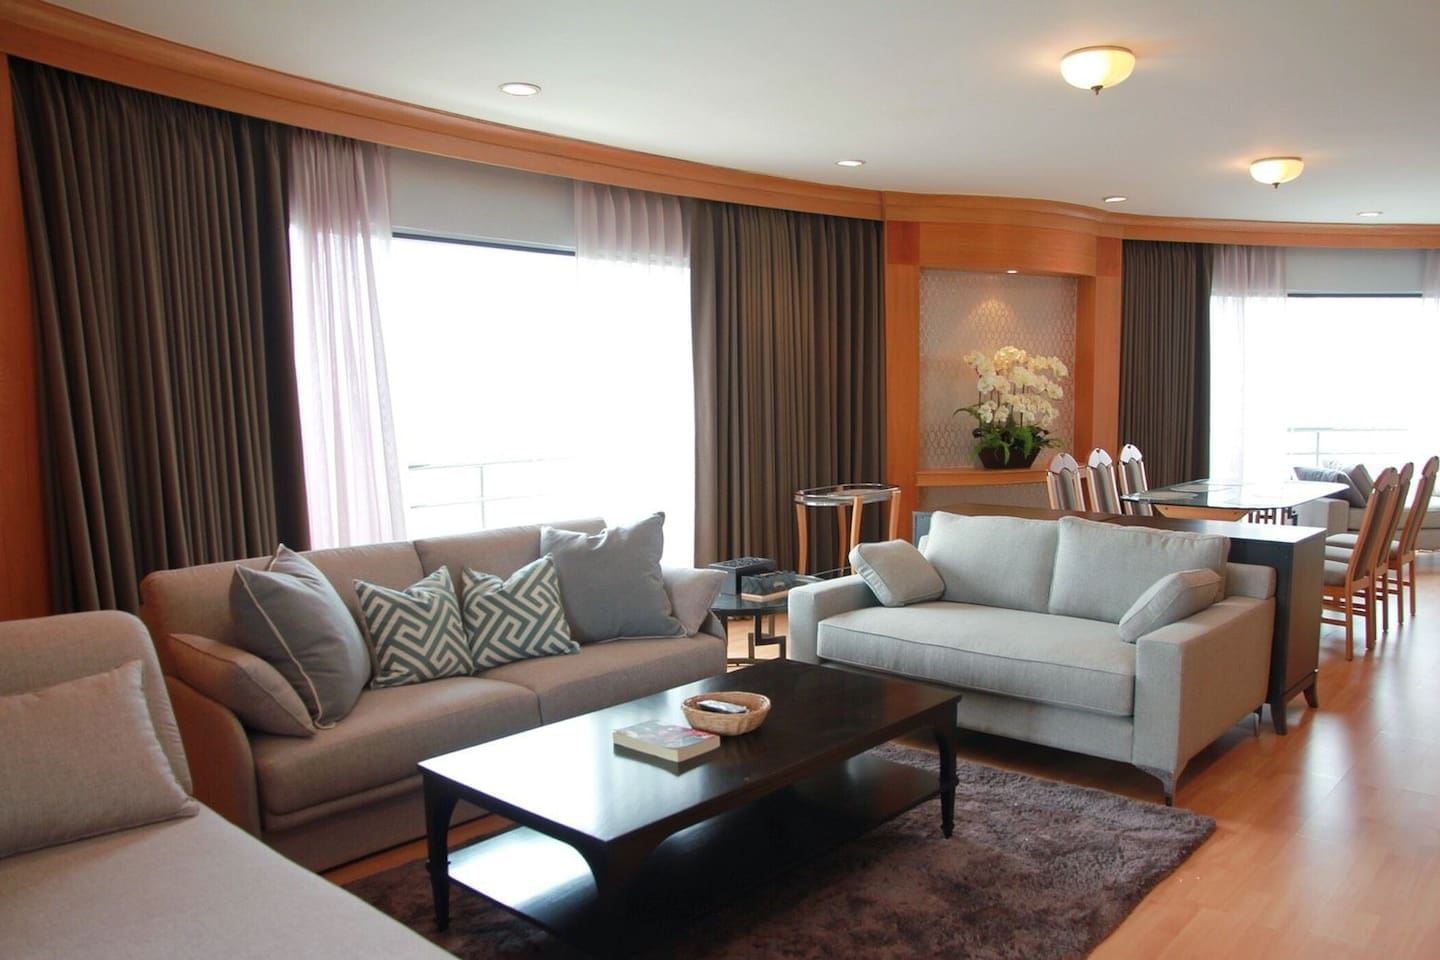 Warm and cozy living area with panaramic view of pattaya city and endless ocean view